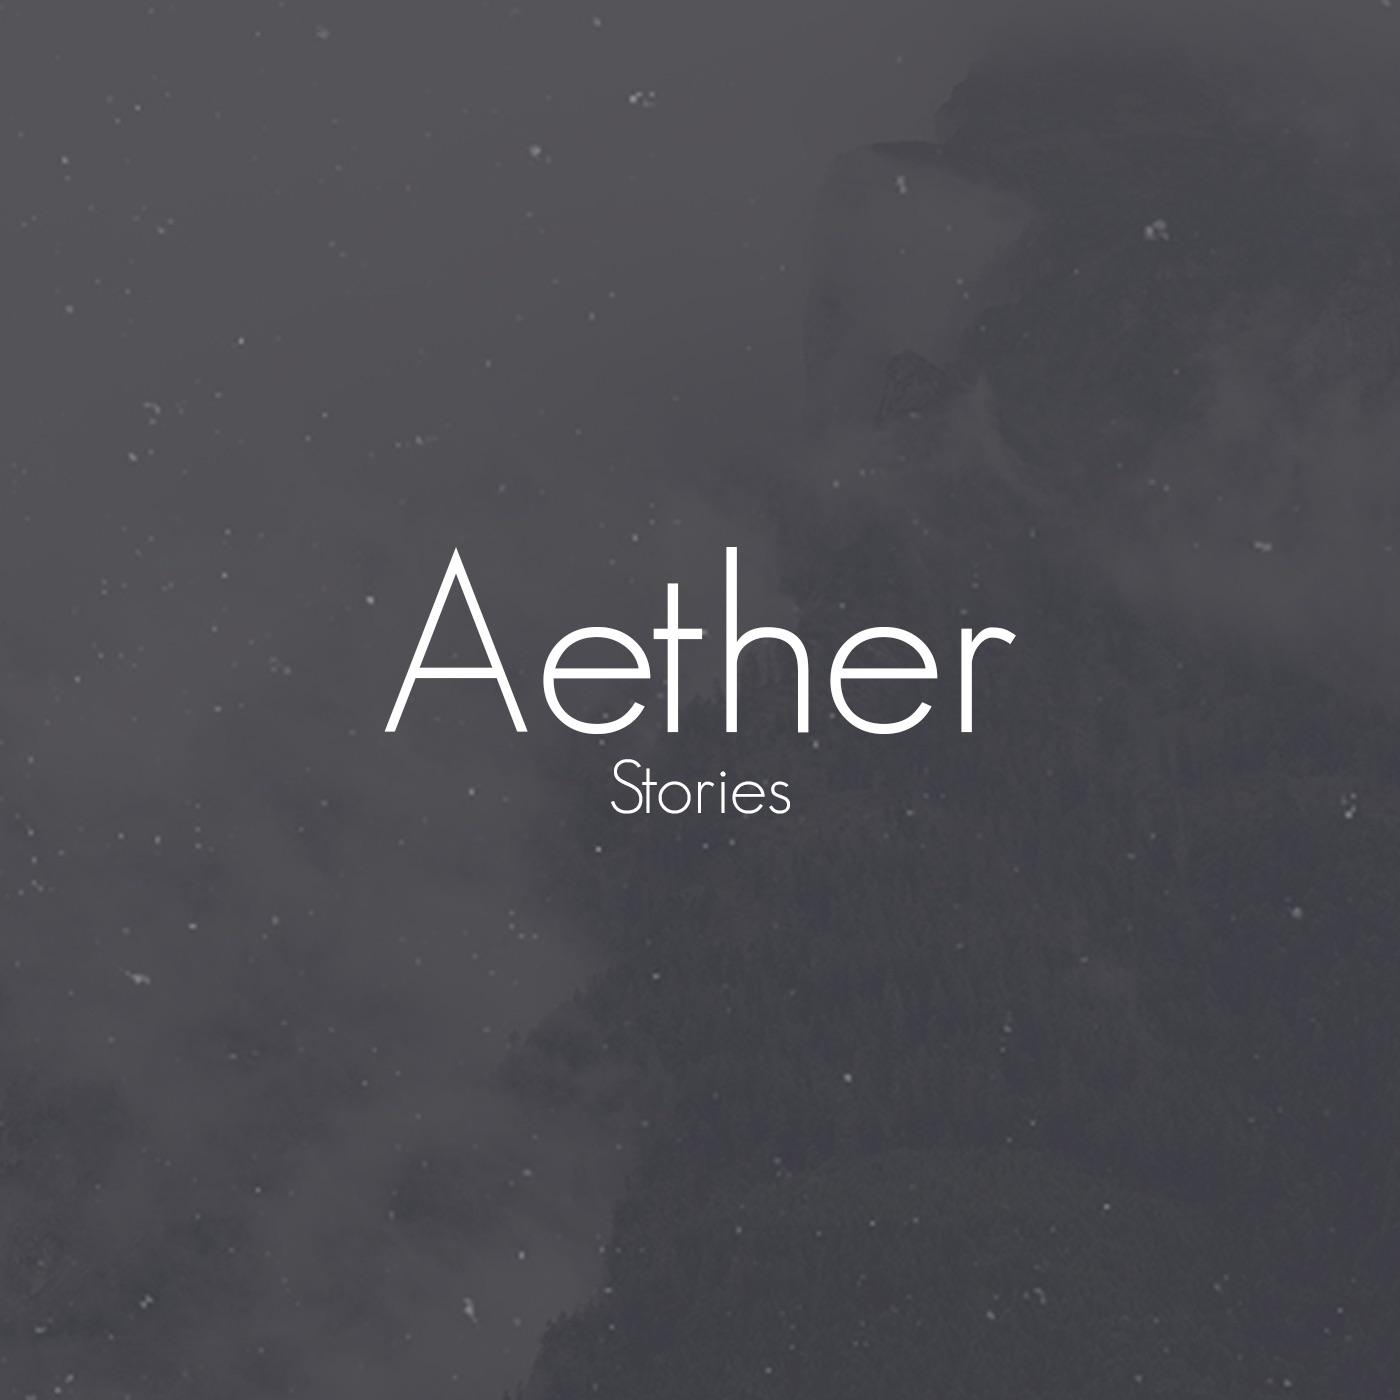 Aether Stories